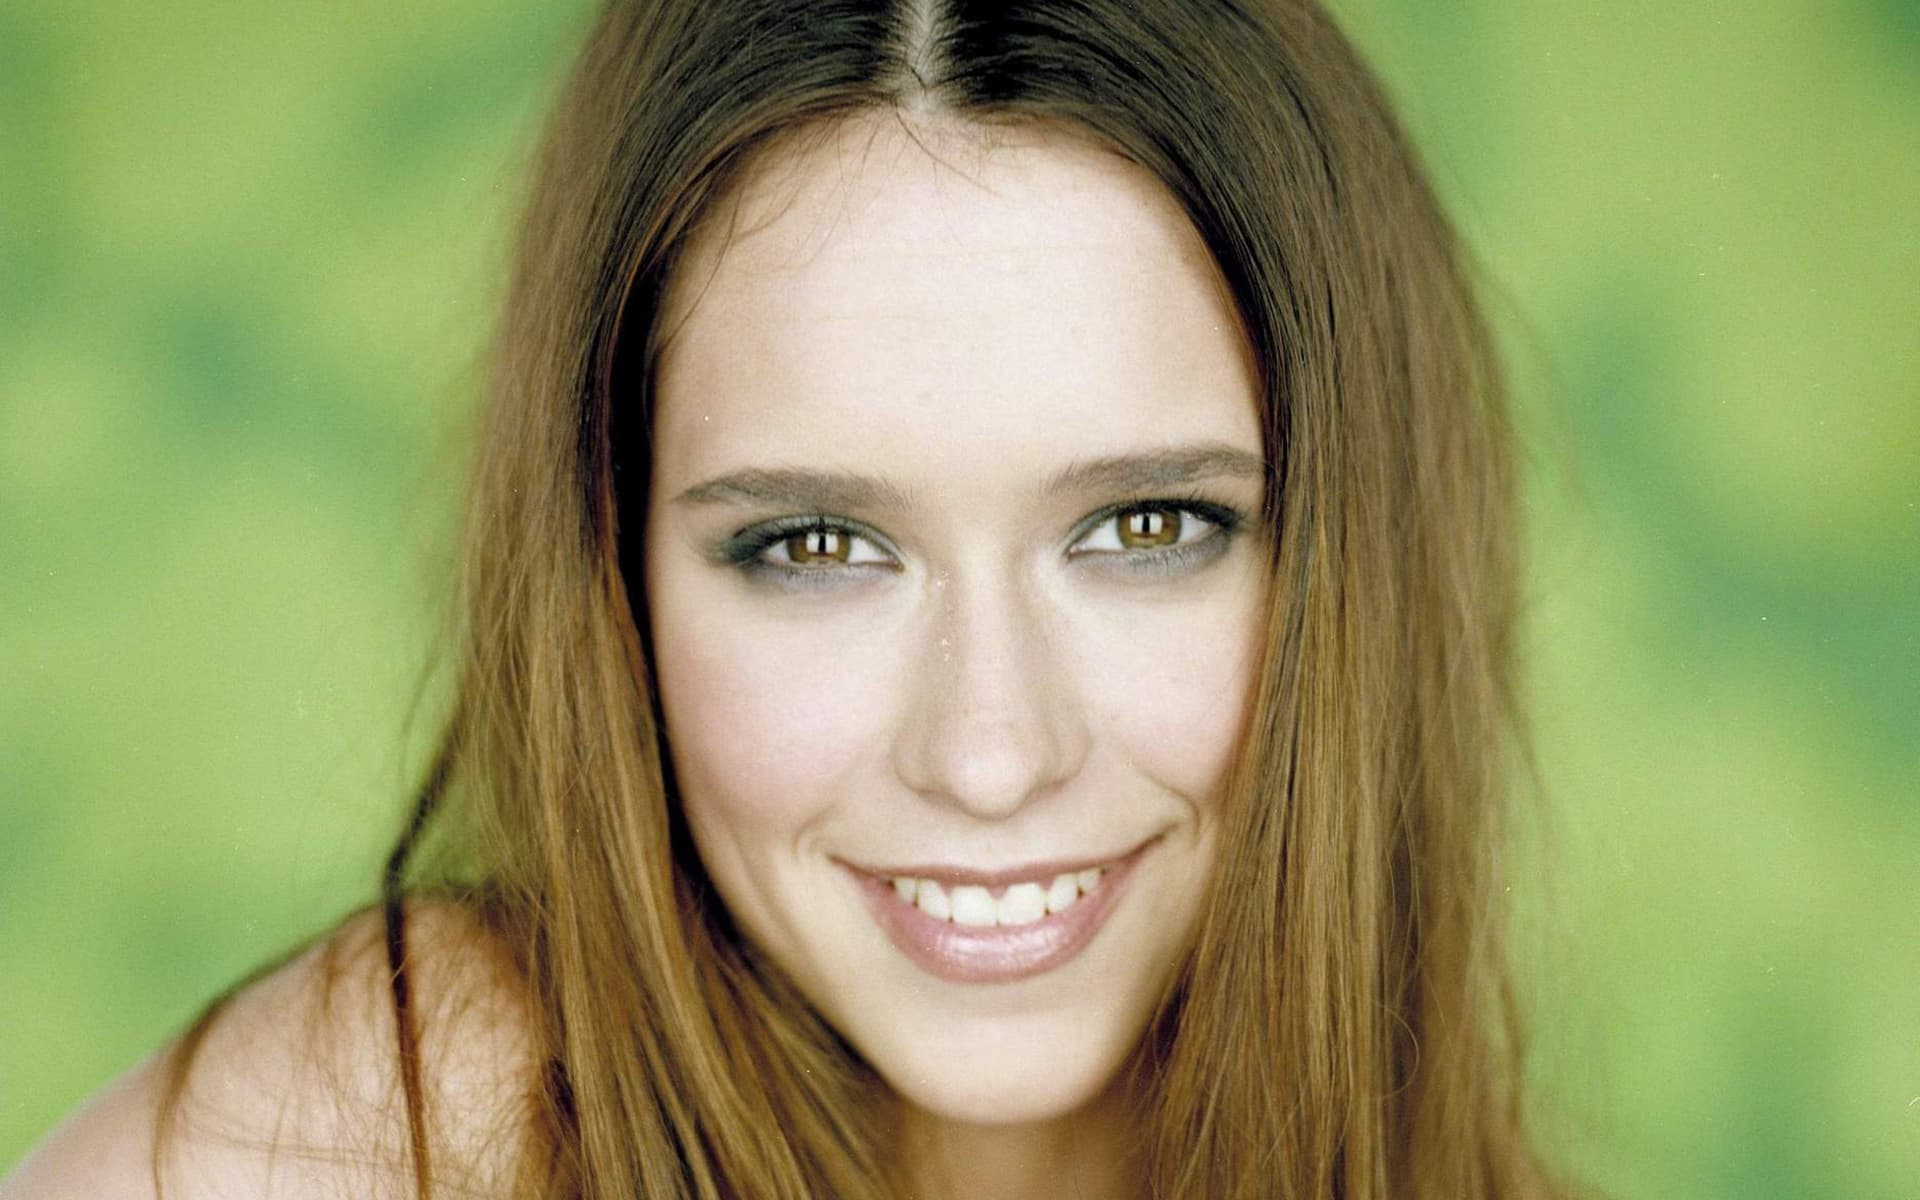 Jennifer Love Hewitt eyes High Definition wallpaper